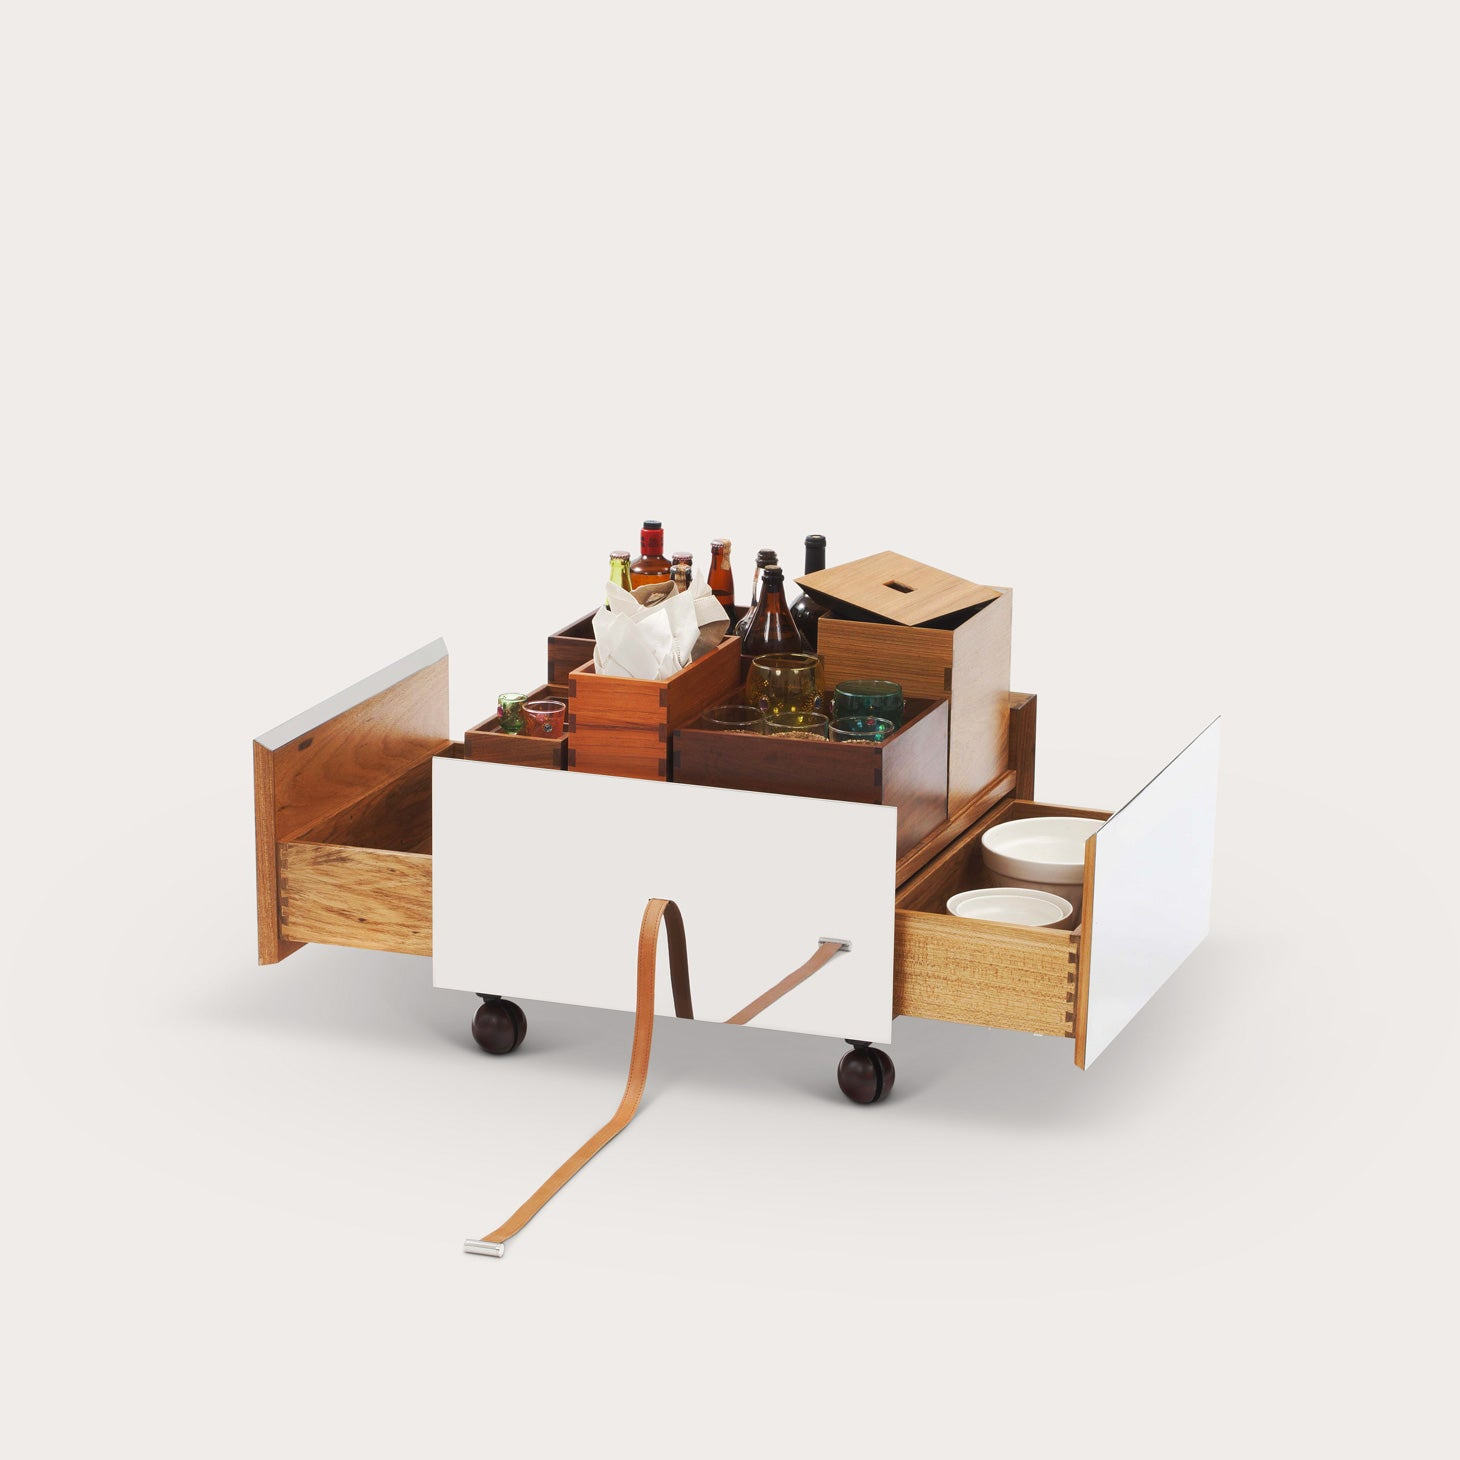 Carrinho Bar Toto Storage Isay Weinfeld Designer Furniture Sku: 003-220-10099